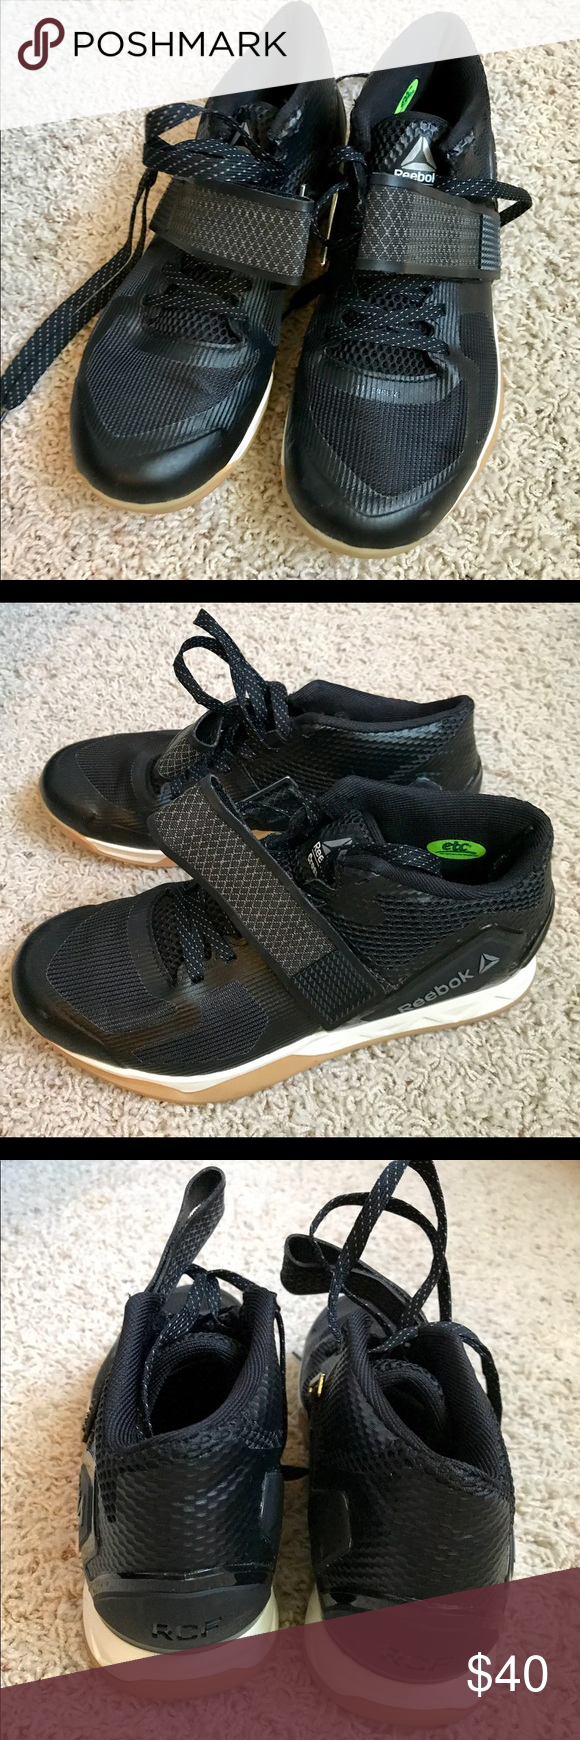 Reebok CrossFit Transition Lft Women Like new. Only worn a handful of times.  Great for switching between lifts and running. Comes with original box. fbfbe71a2